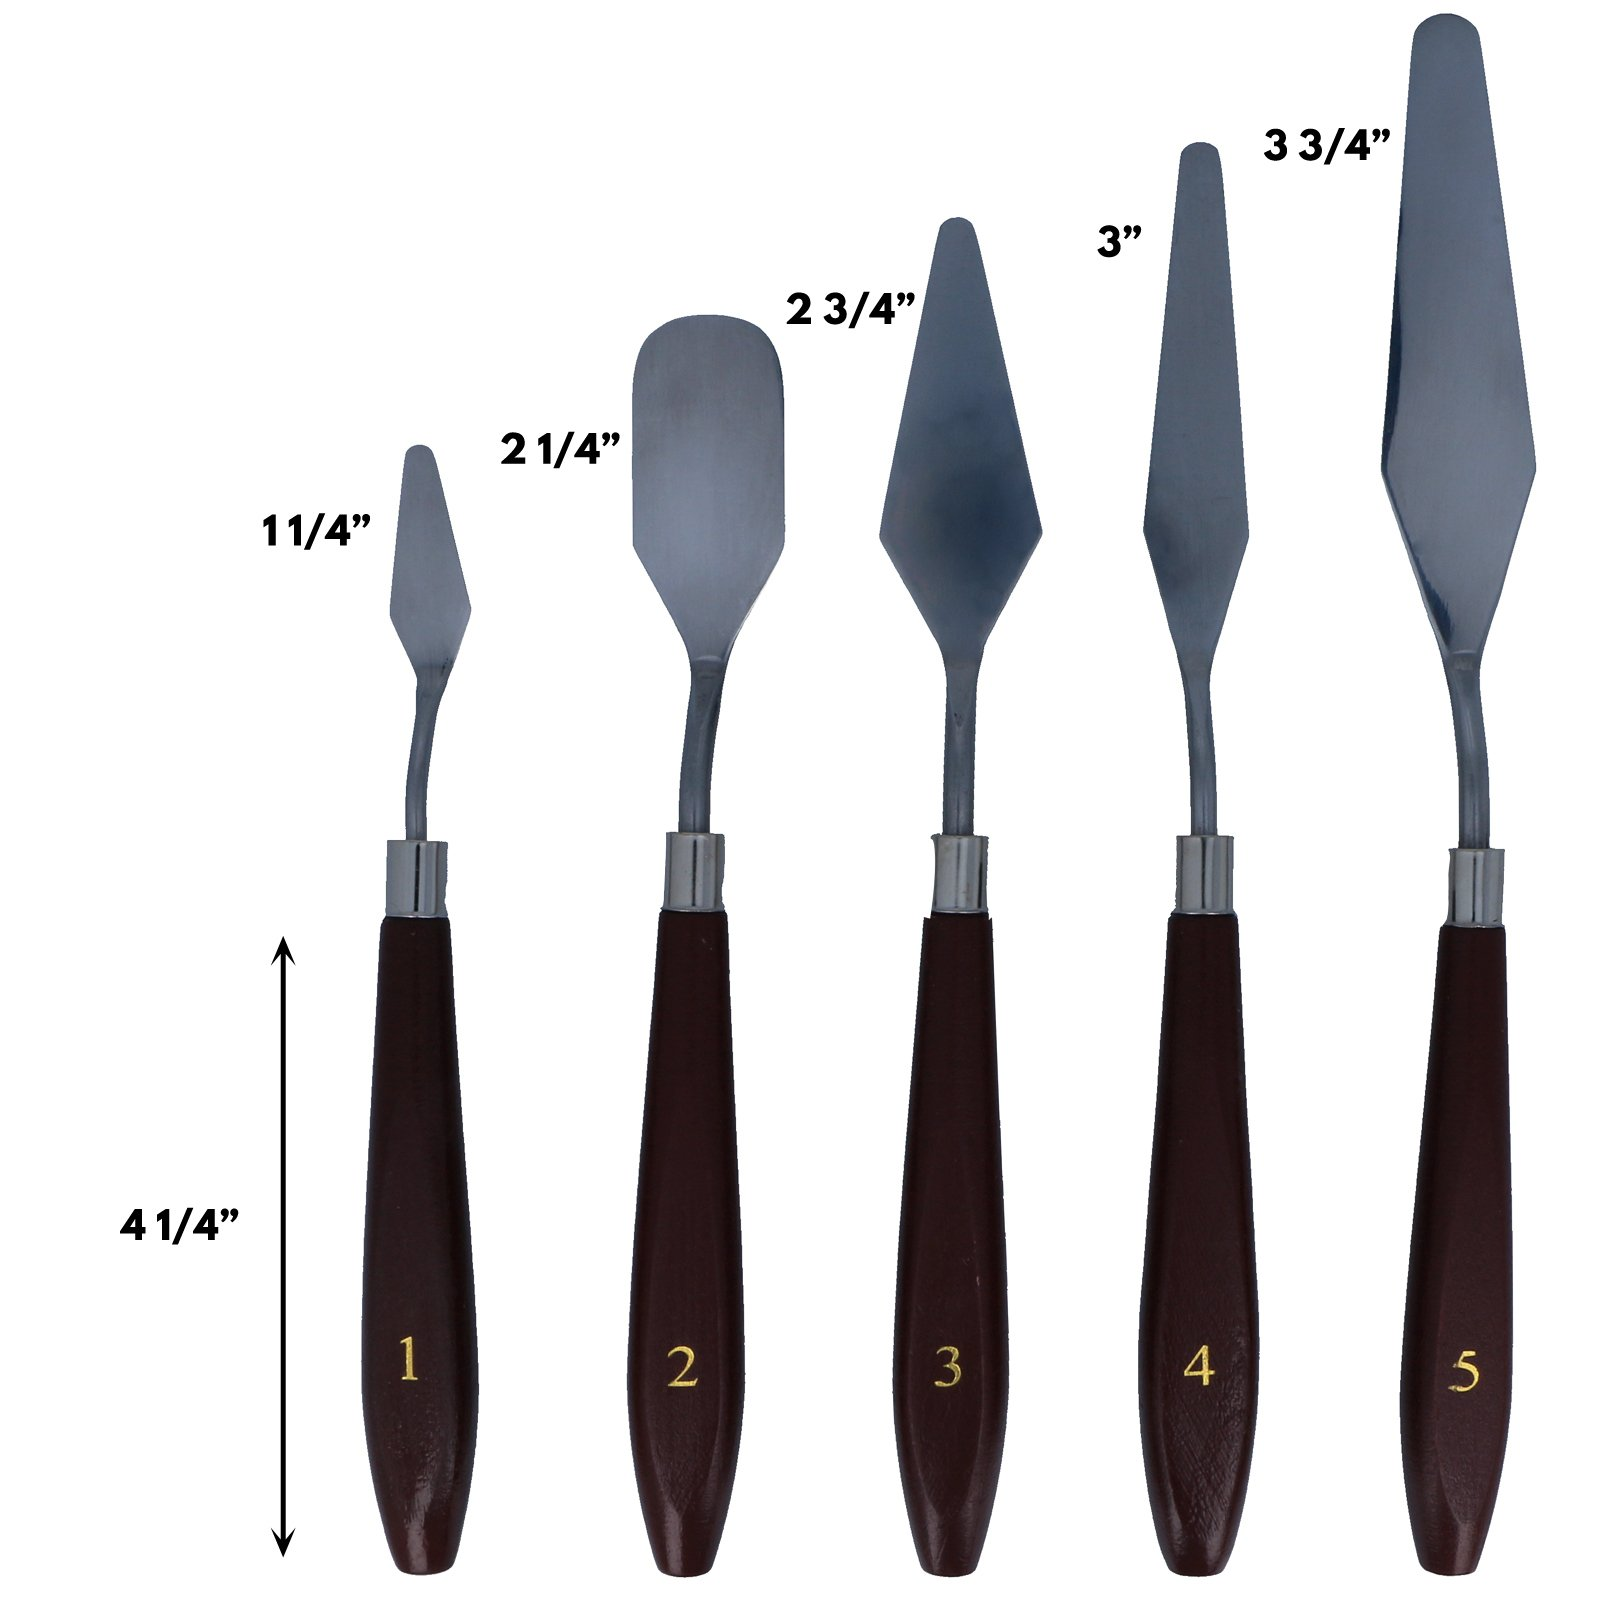 5pc Universal Tool Artists Spatula Set Wooden Handles Assorted Sizes